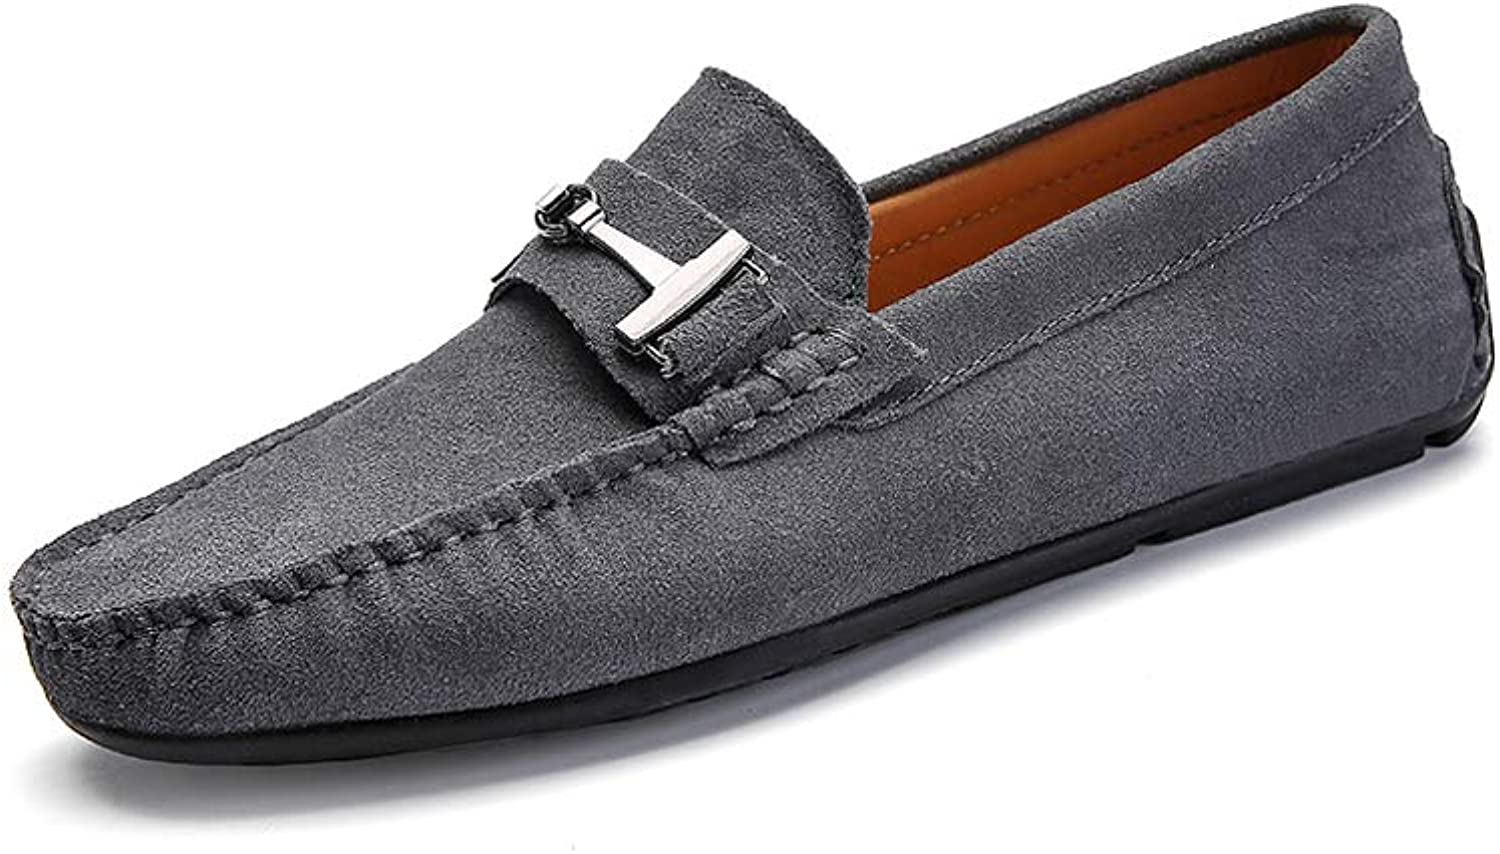 Men's Non-slip Leisure Driving shoes Cozy Breathable Hasp Flat shoes Soft Sleeve Loafers